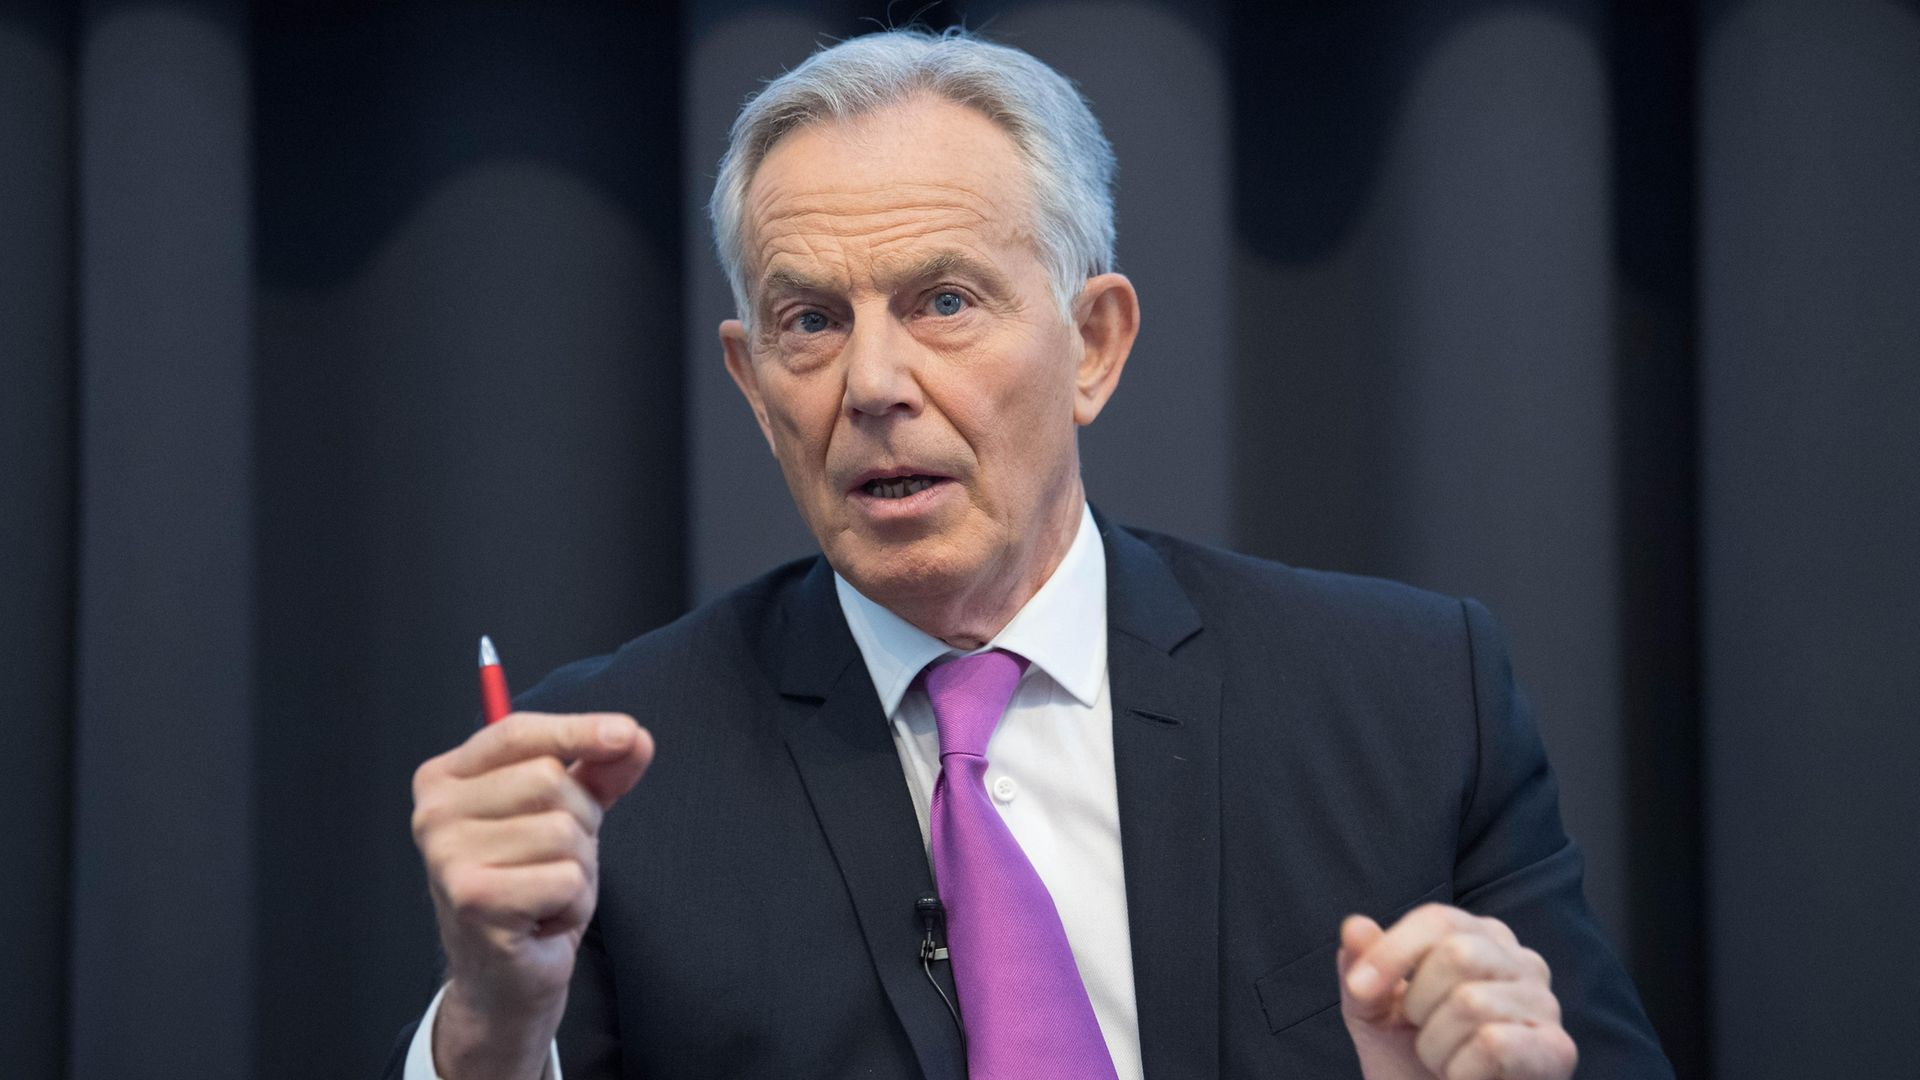 Tony Blair has suggested England implement a 'traffic light system' for easing Covid lockdown restrictions - Credit: PA